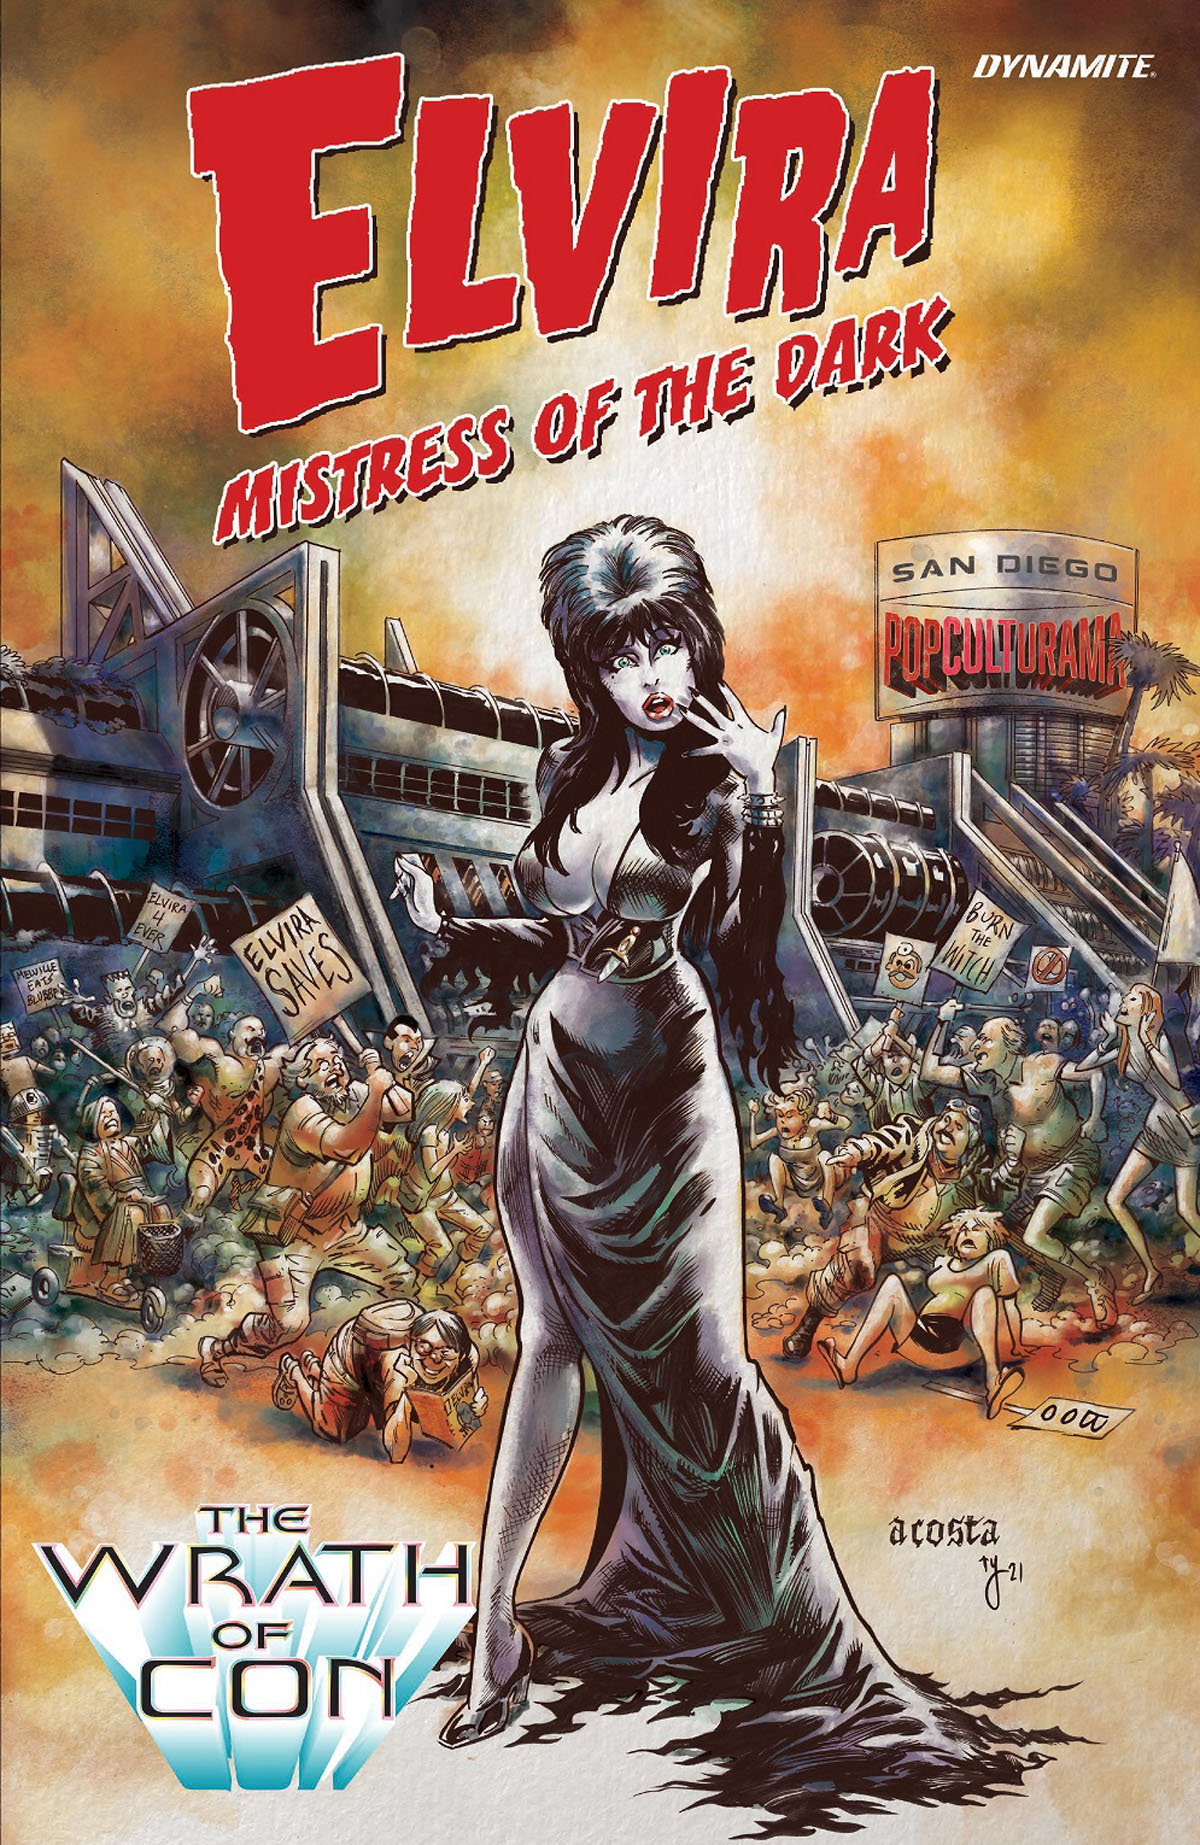 Elvira: The Wrath of Con #1 Cover by Dave Acosta